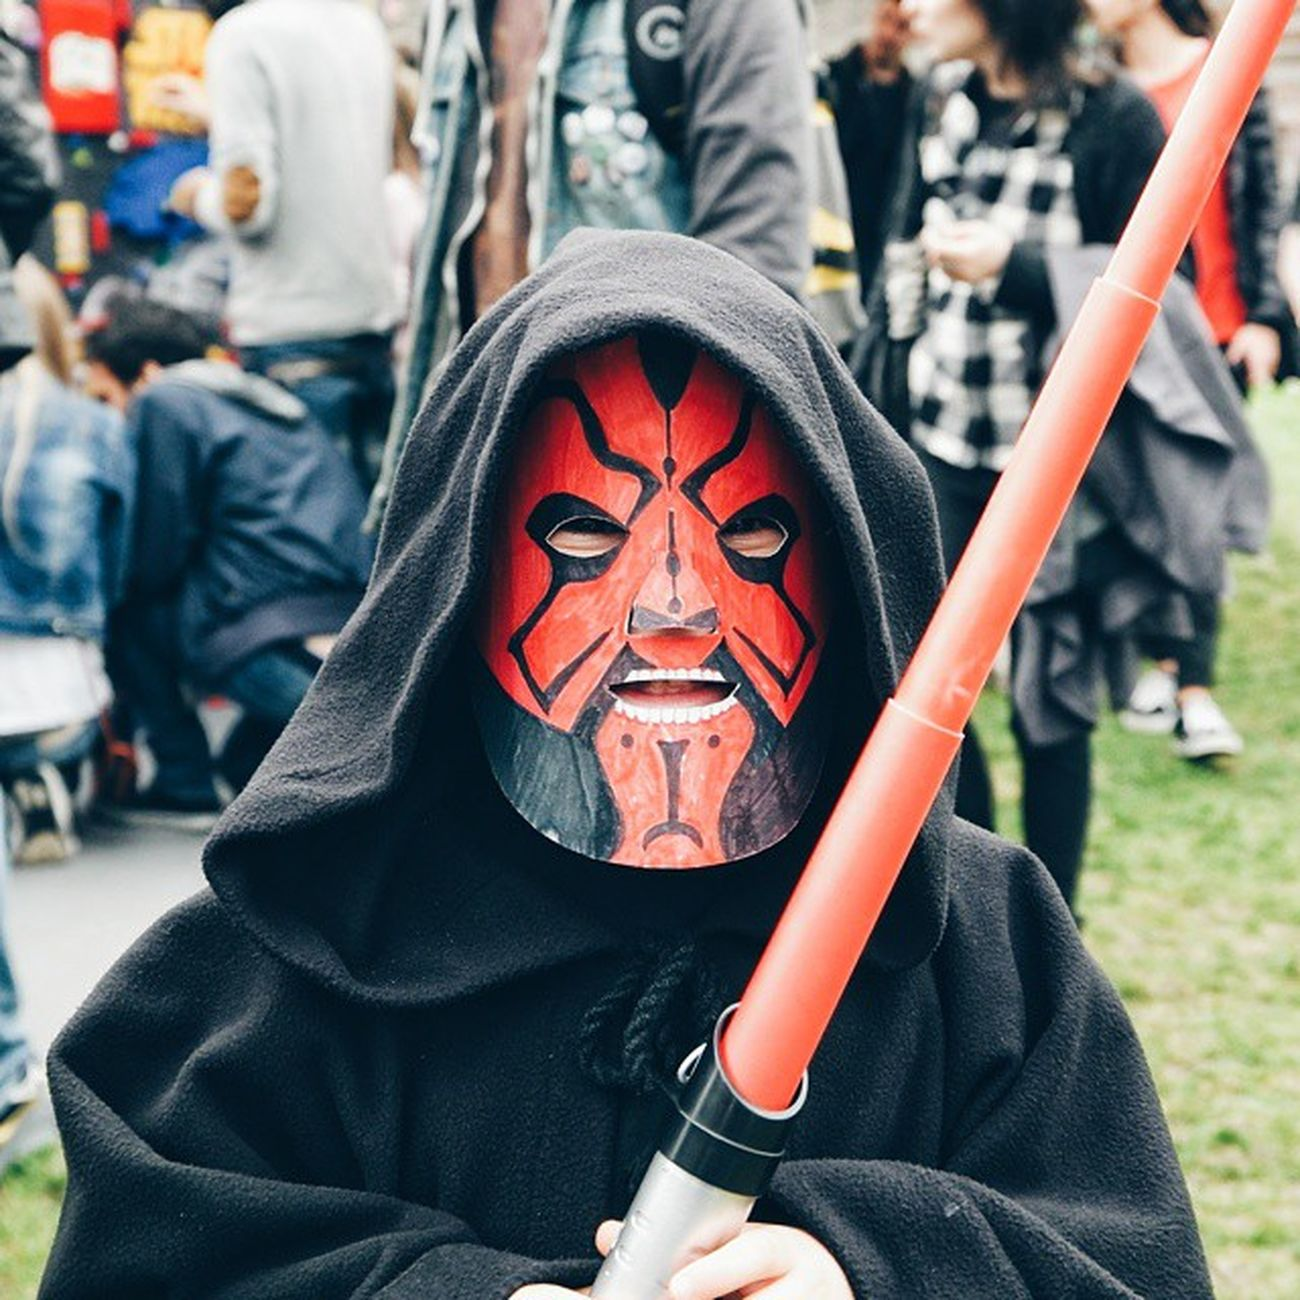 "[StarWarsDayMilano ] ""I'm darfmol.... 😈 Afraid, uh?😎"" No child, we are not afraid, but you are the cutest of the Maul... Sorry... Them all 😂 MayTheFourthBeWithYou MayThe4thBeWithYou Samsungnx1 nx1 samsungsmartcamera imagelogger fotosociality @samsungcamera @instagram @starwars"